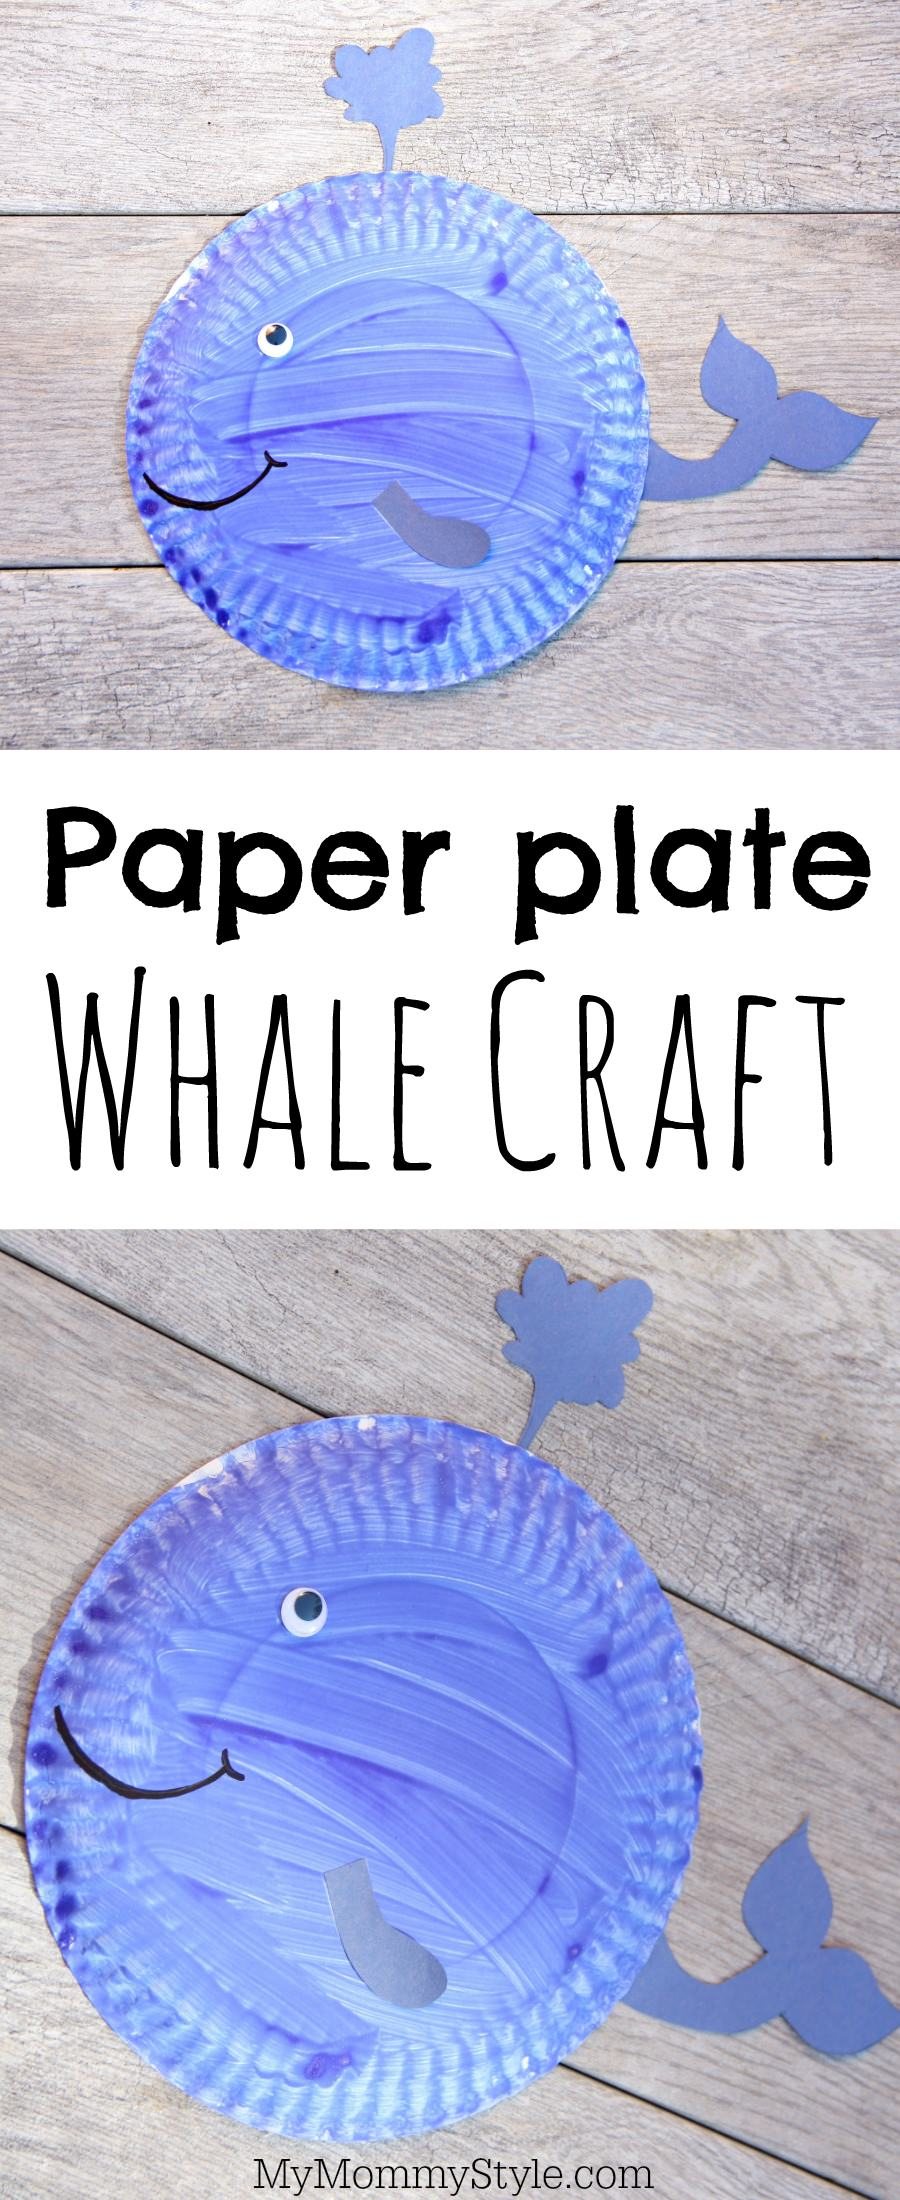 Paper Plate Walrus Craft My Mommy Style